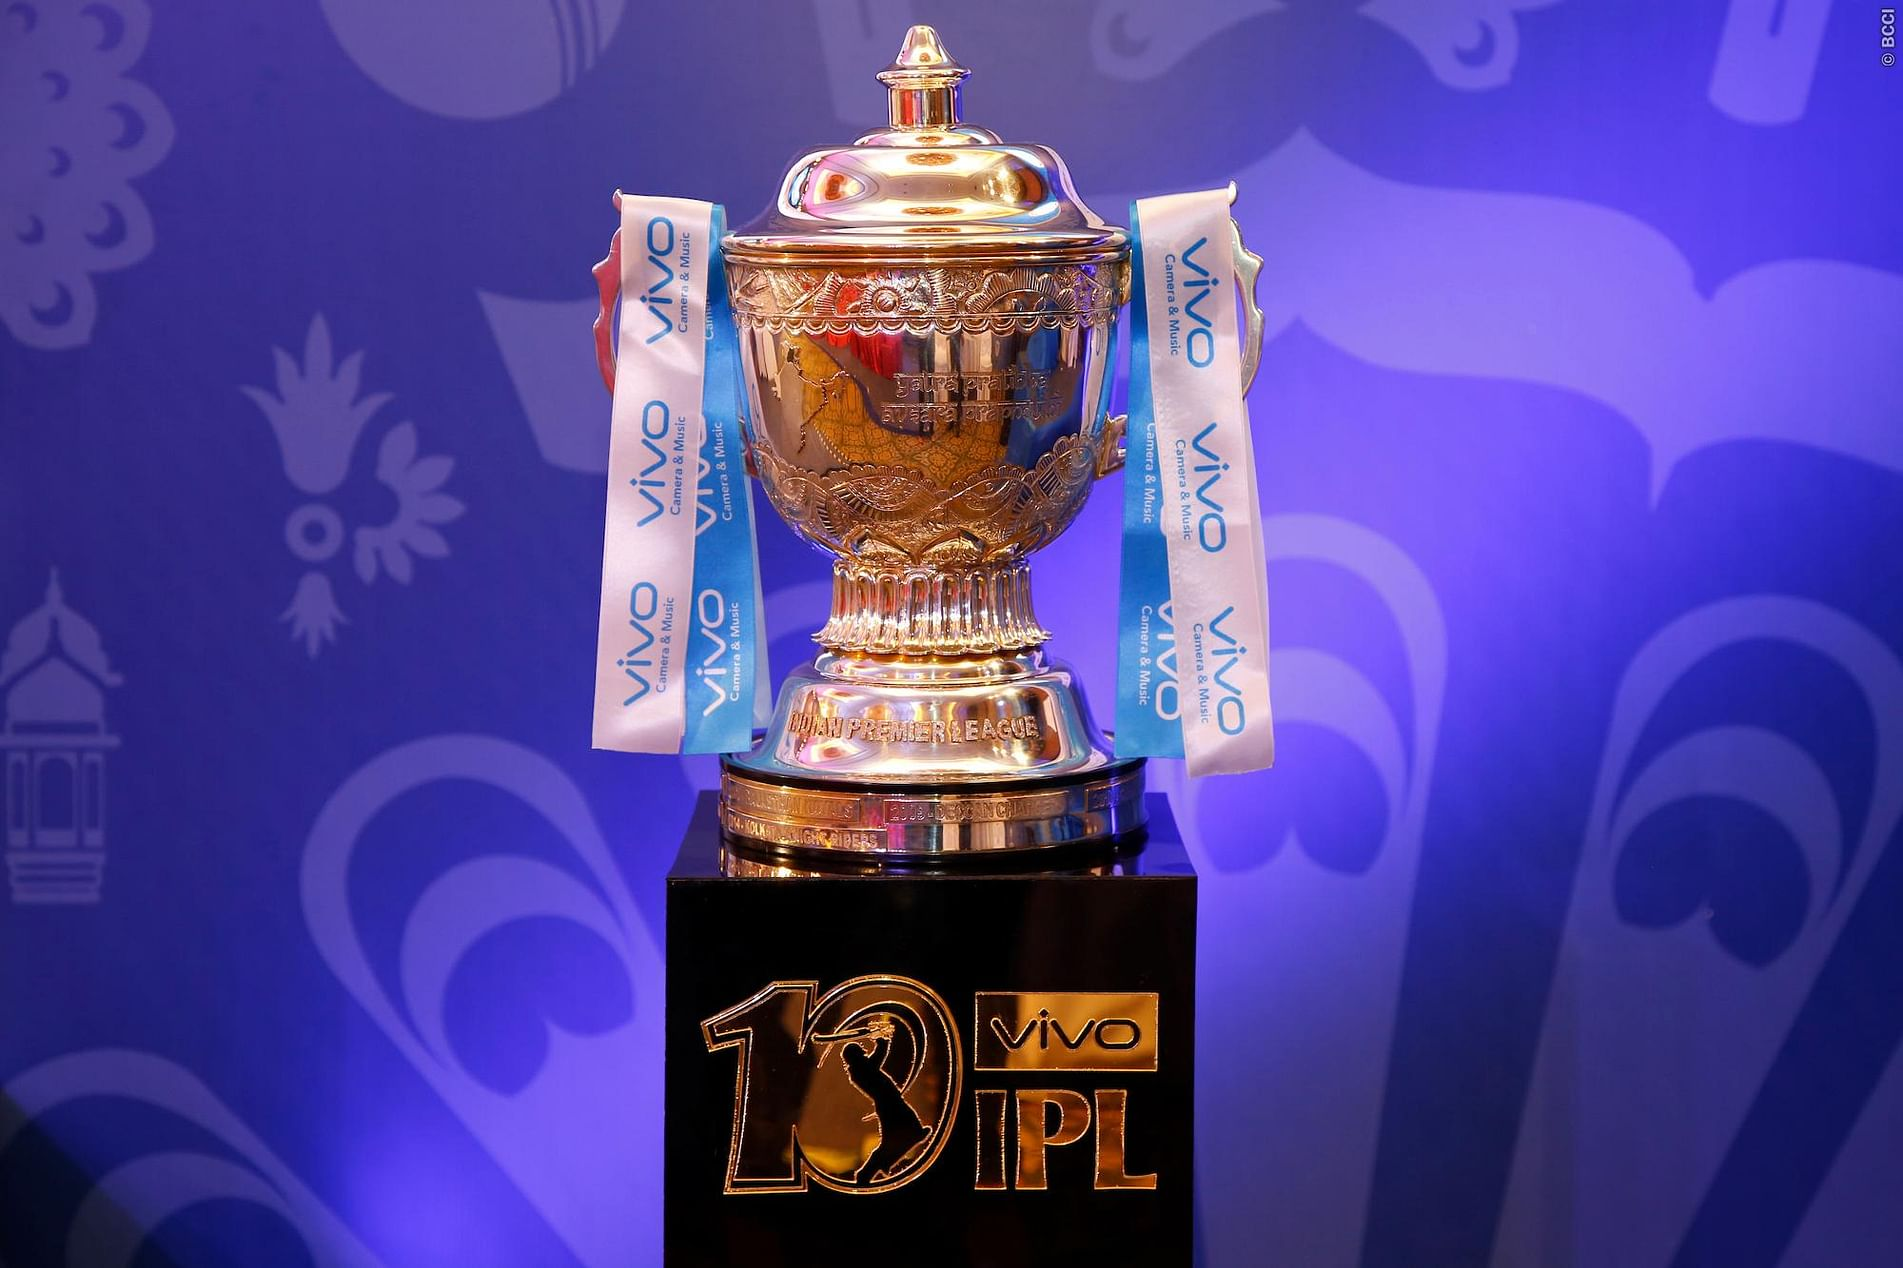 1 venue for PSL, 3 venues for IPL! Is it Nepotism by UAE?